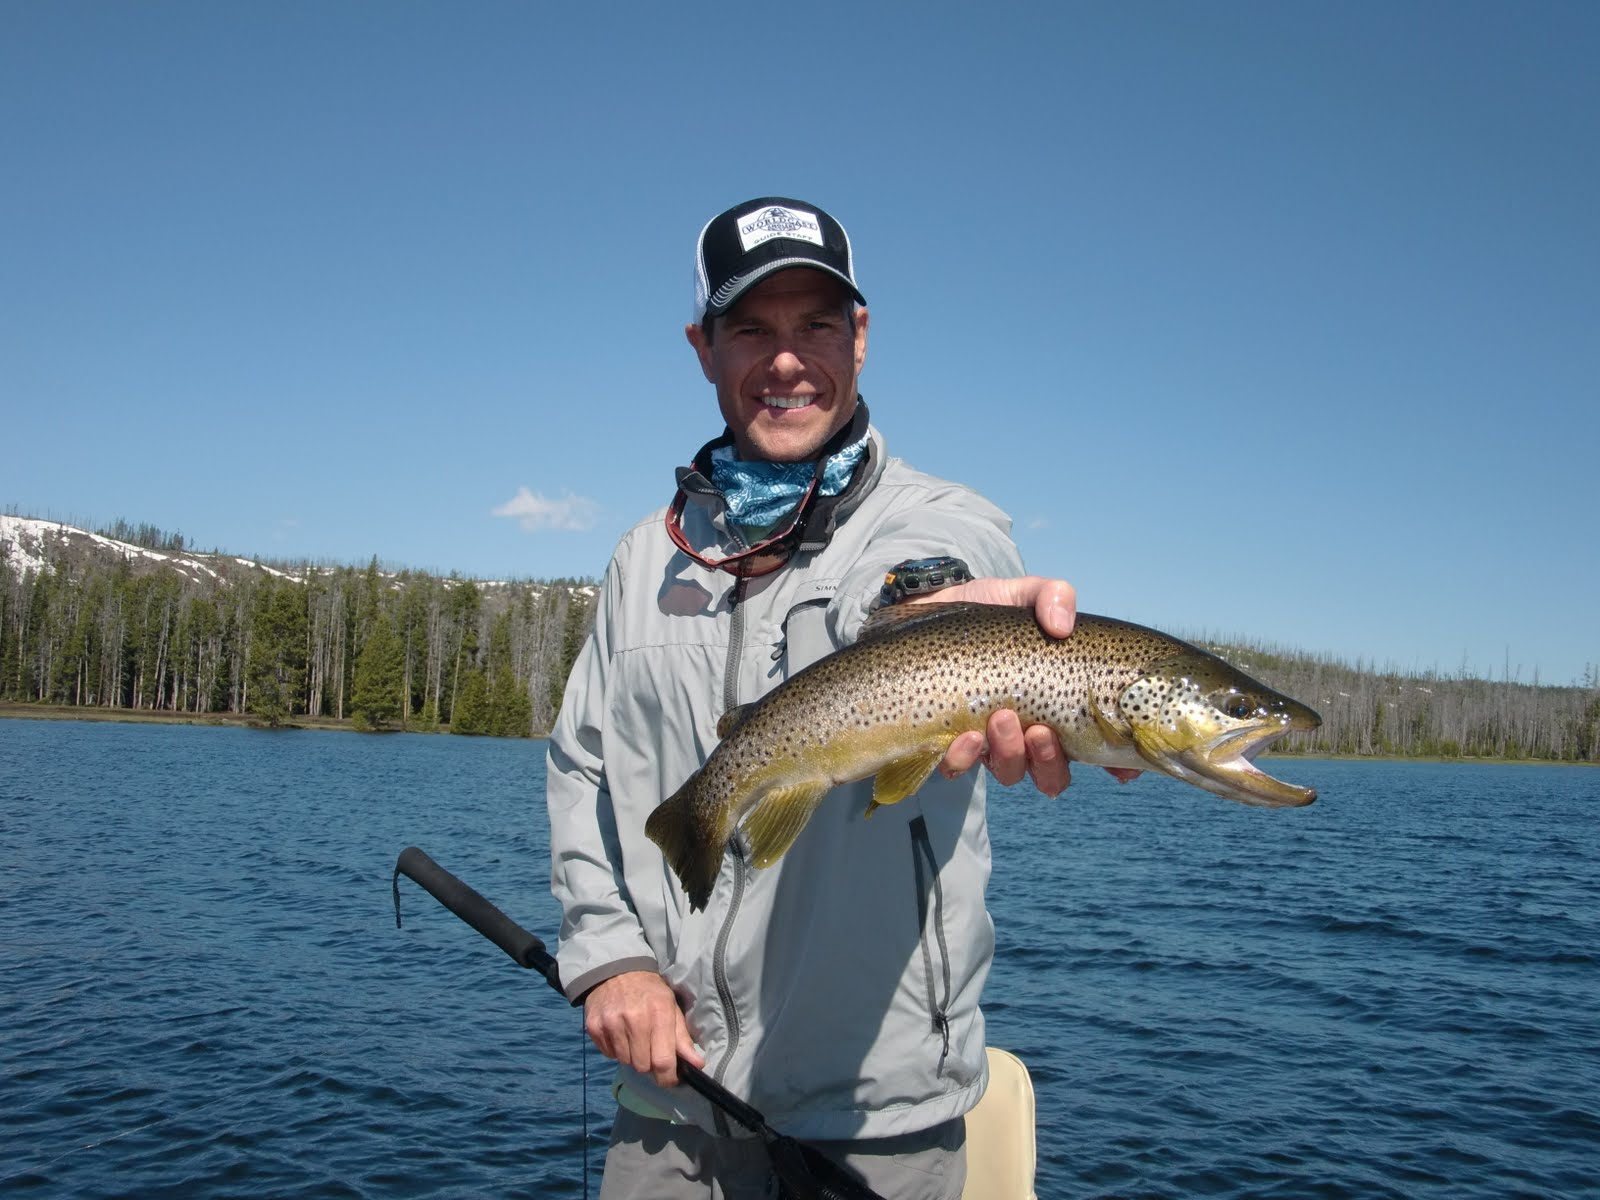 Jackson hole fly fishing blog july 2011 for Lake jackson fishing report